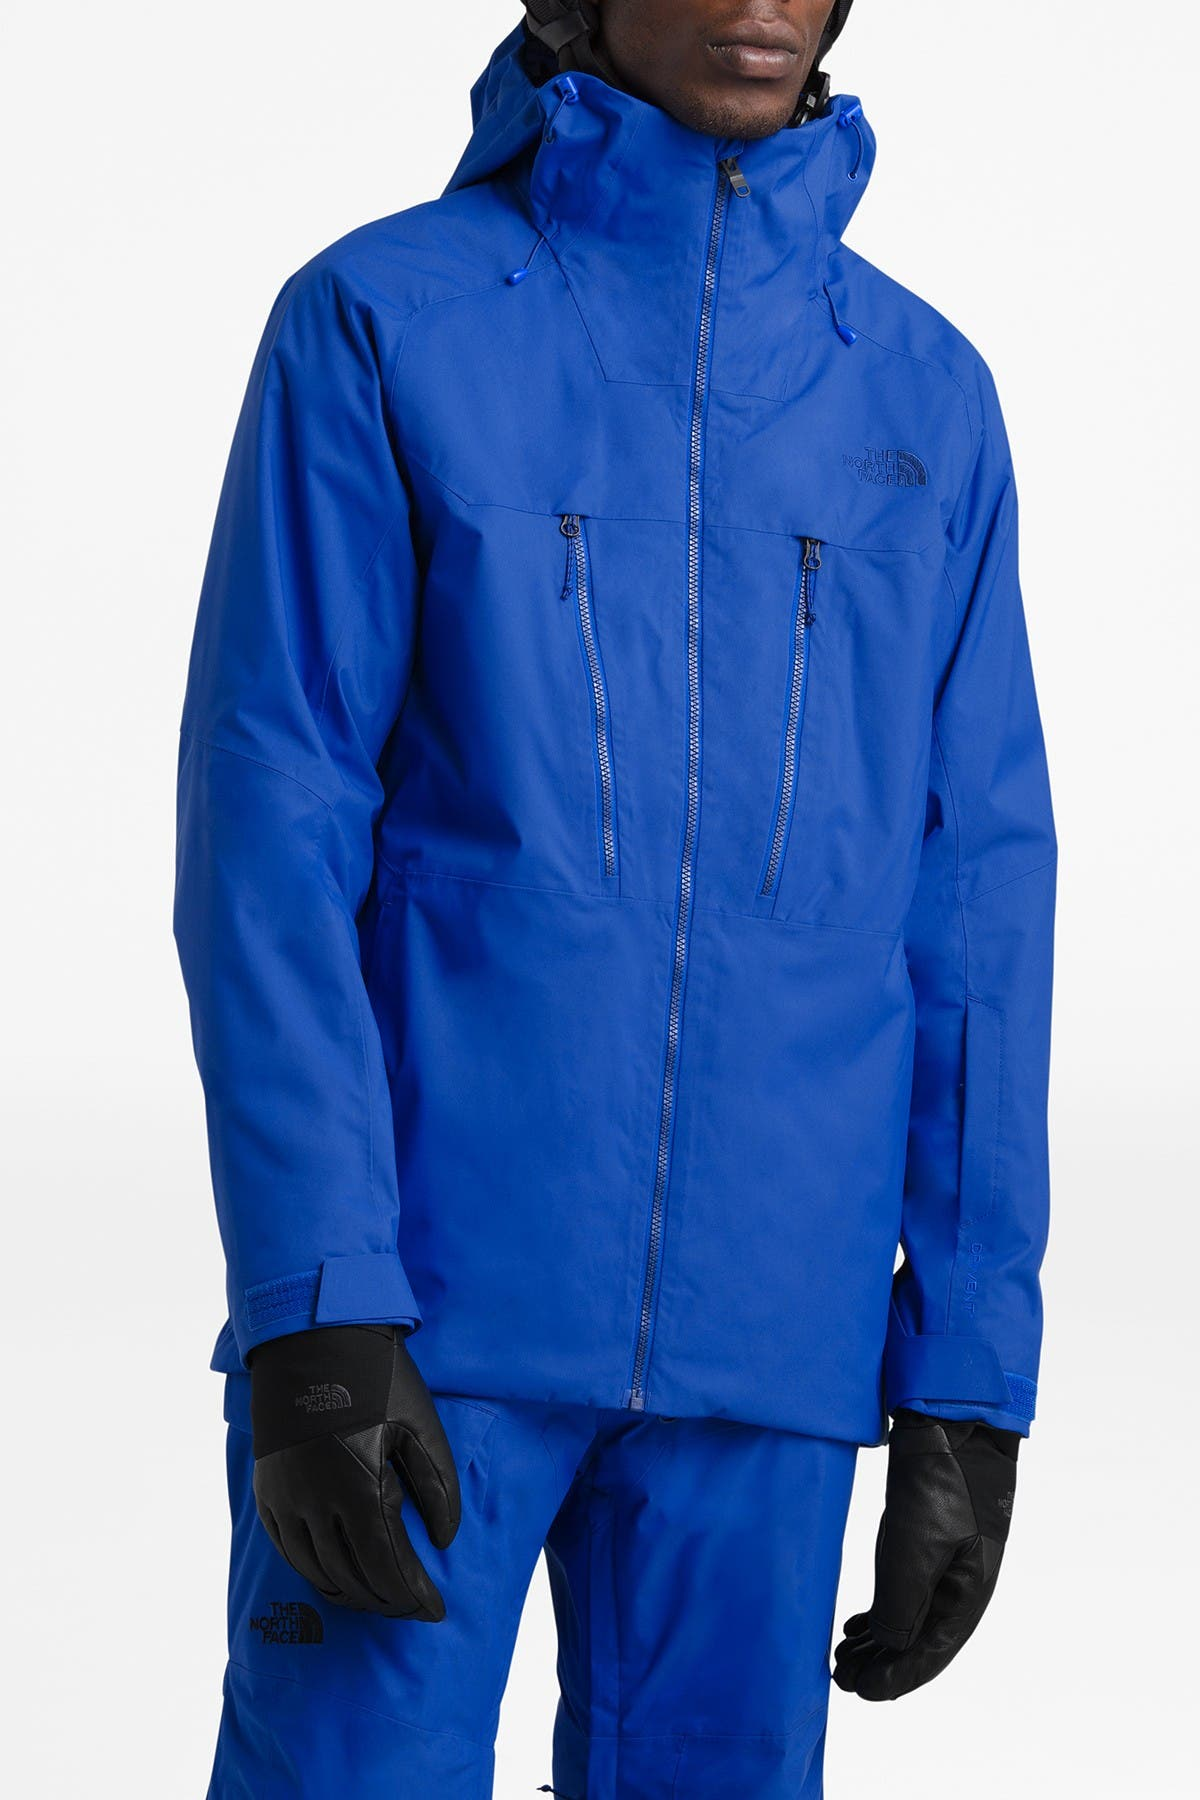 Image of The North Face ThermoBall(TM) Eco Snow Triclimate(R) Jacket